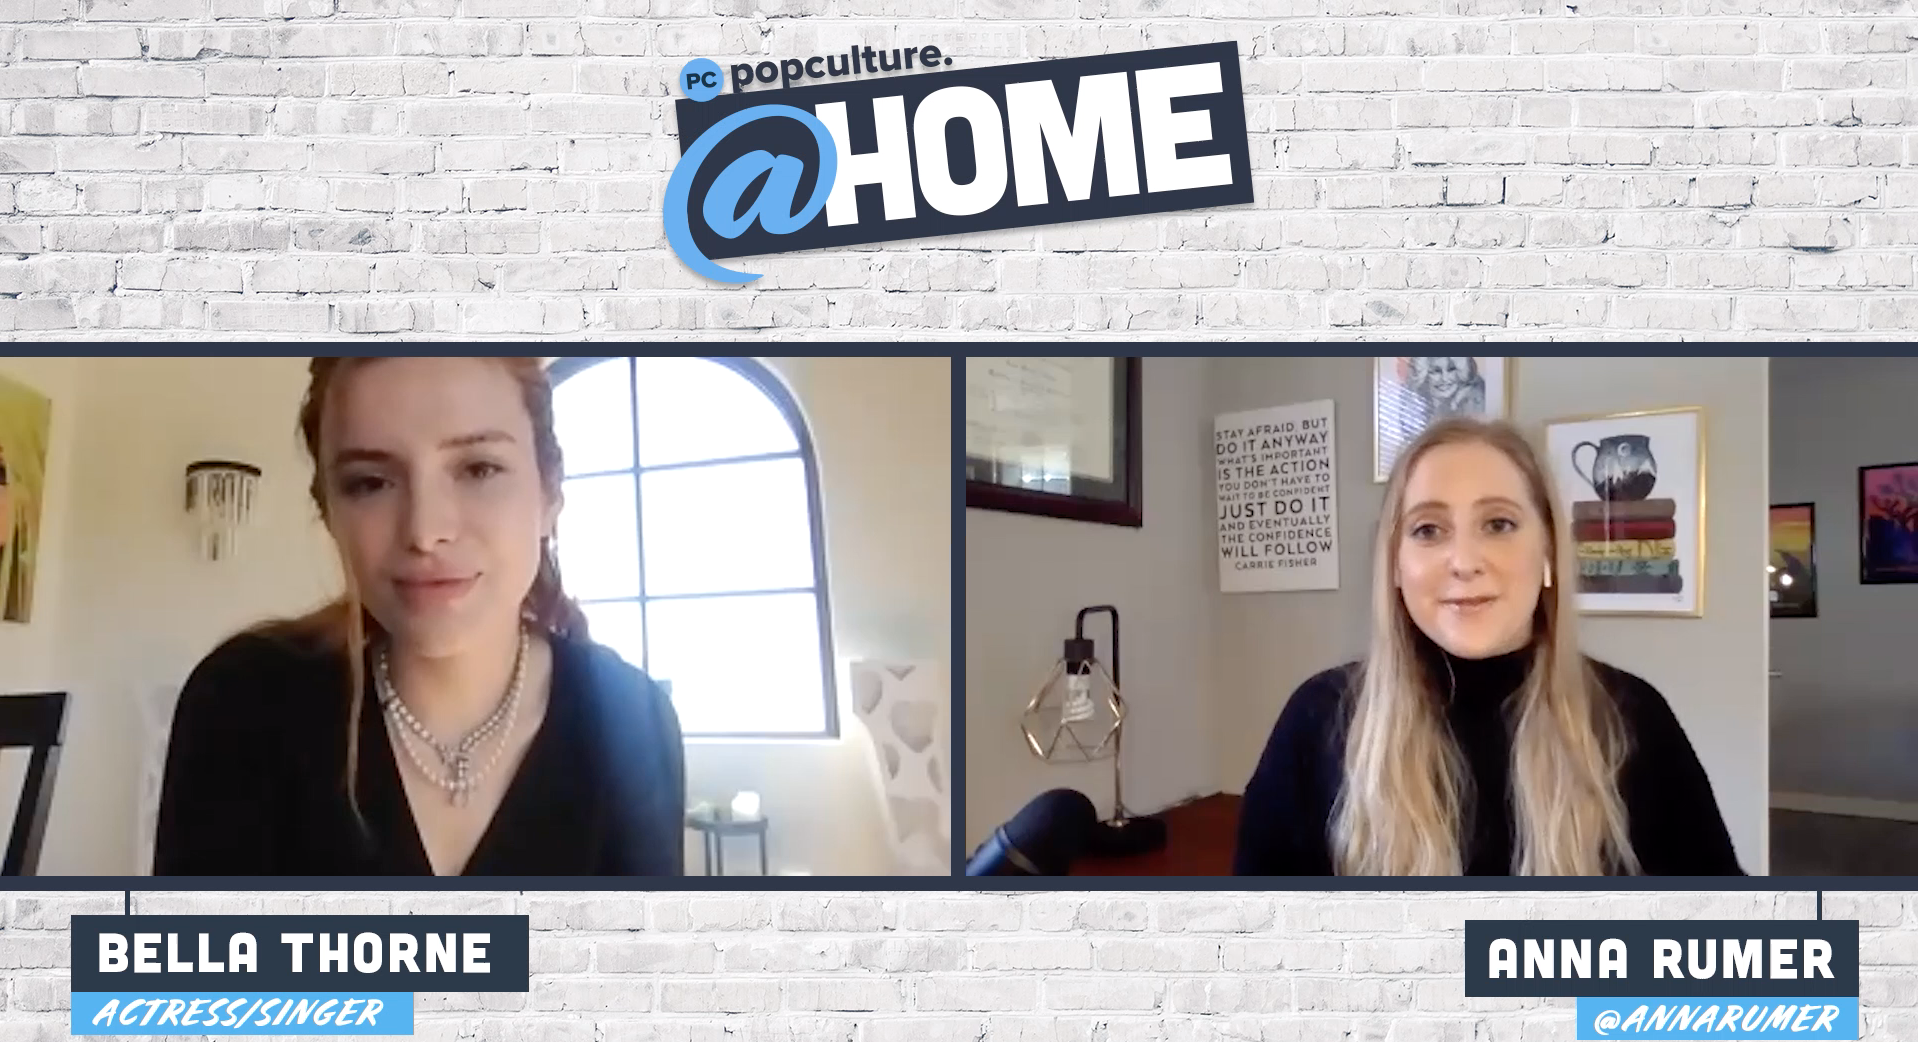 Popculture @Home Exclusive Interview with Bella Thorne